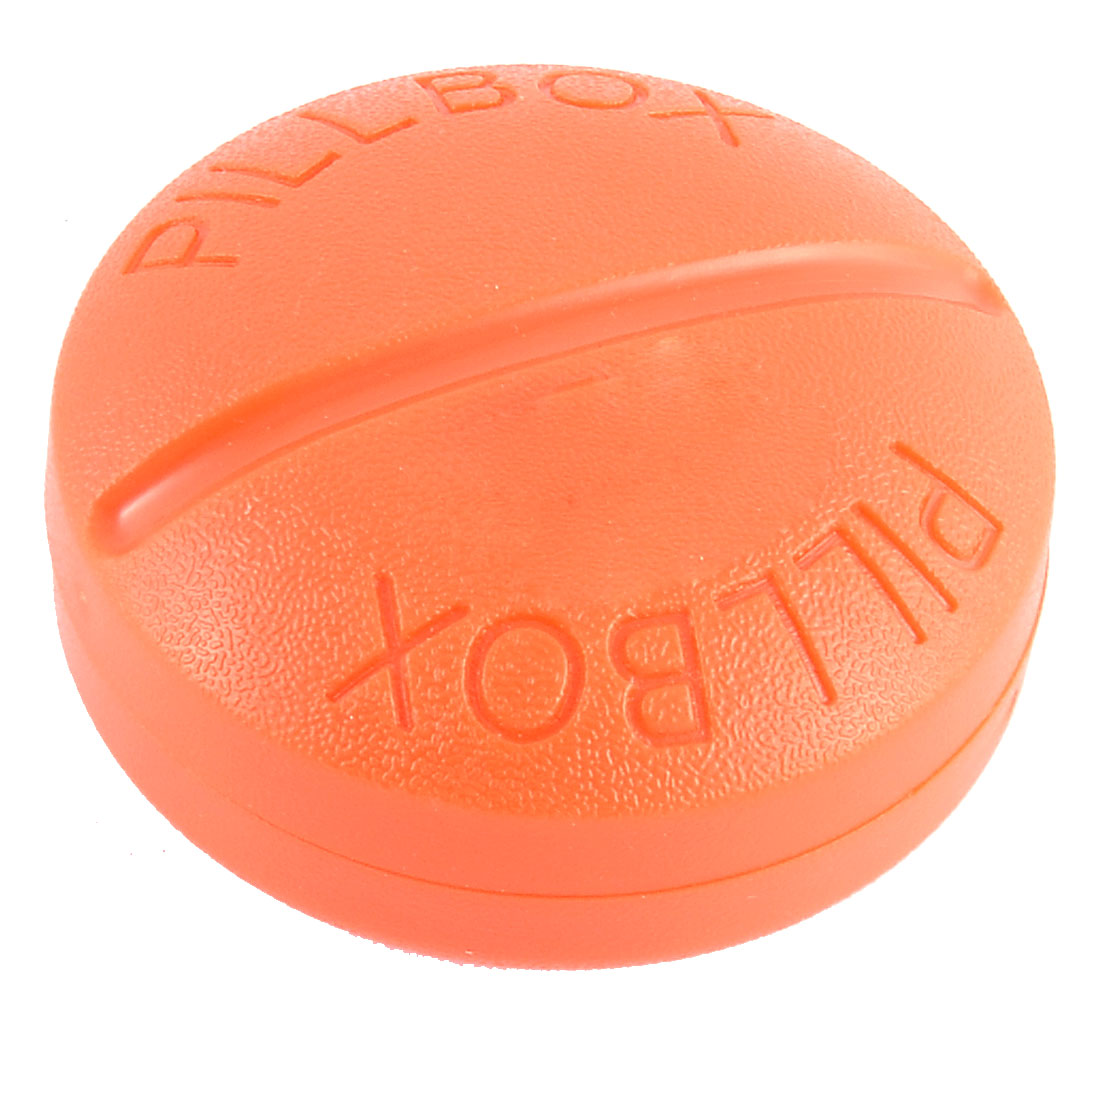 Plastic Round Shaped Daily Pill Medicine Storage Case Box Container Orange